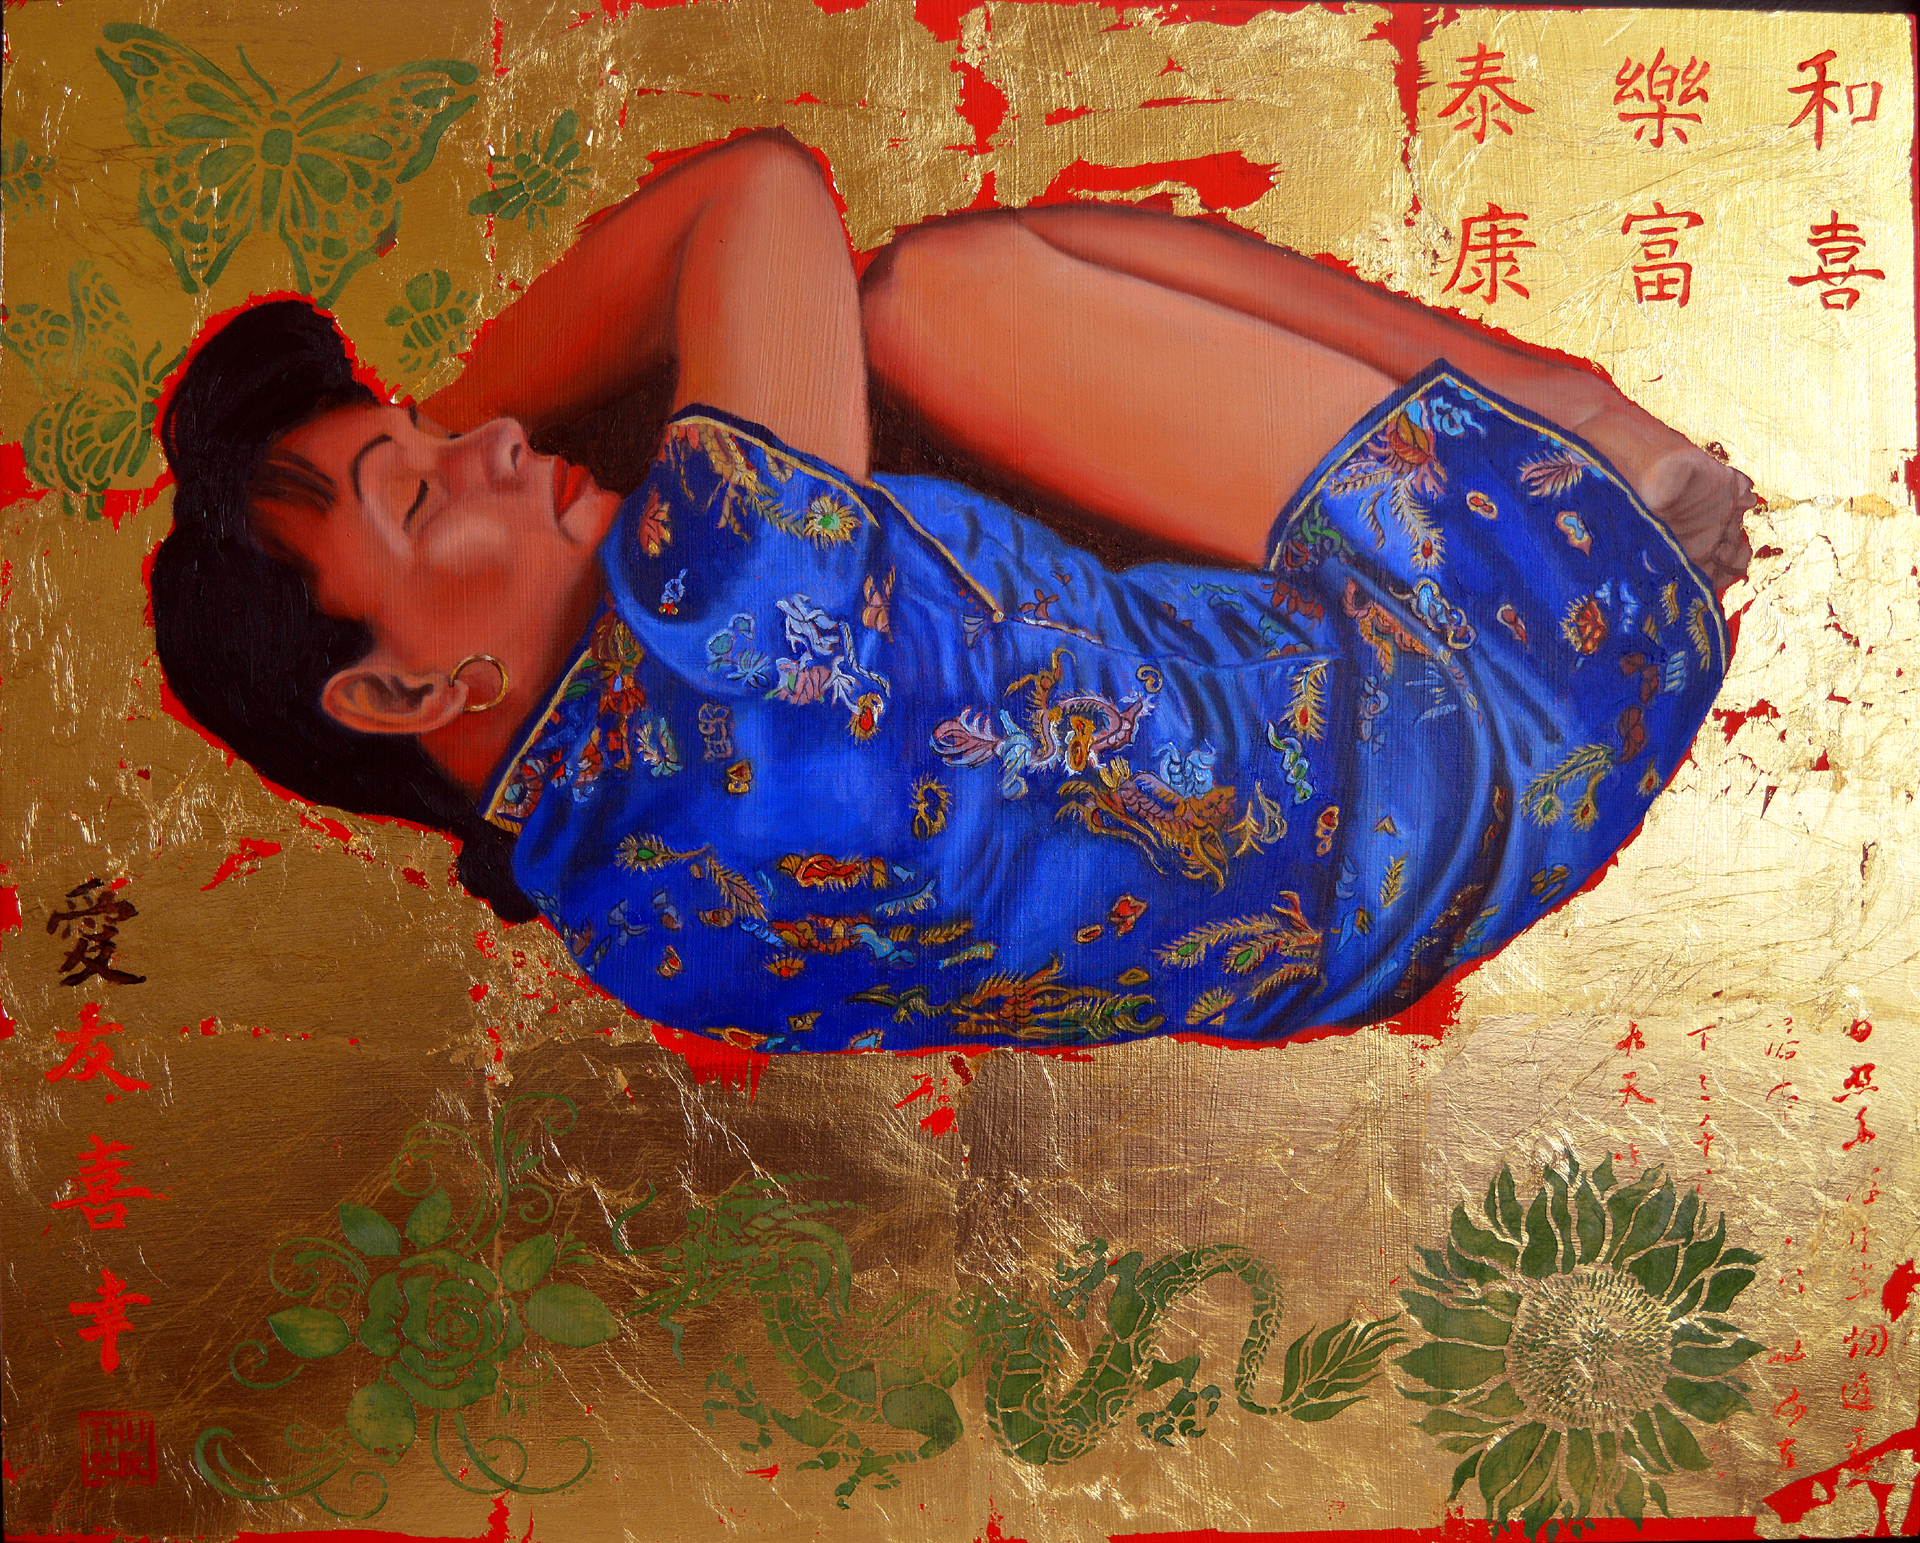 Thu Nguyen; The Dream, 2019, Original Painting Oil, 16 x 20 inches. Artwork description: 241 Painting with the image of a sleeping, crouching Chinese Woman.  Medium- format painting with a combination of different materials and techniques - from relief acrylic to luxurious 24 kt gold leaf.Original paintingThe Dreamby Thu NguyenPainting is created on a panel and has a relief.  The painting ...